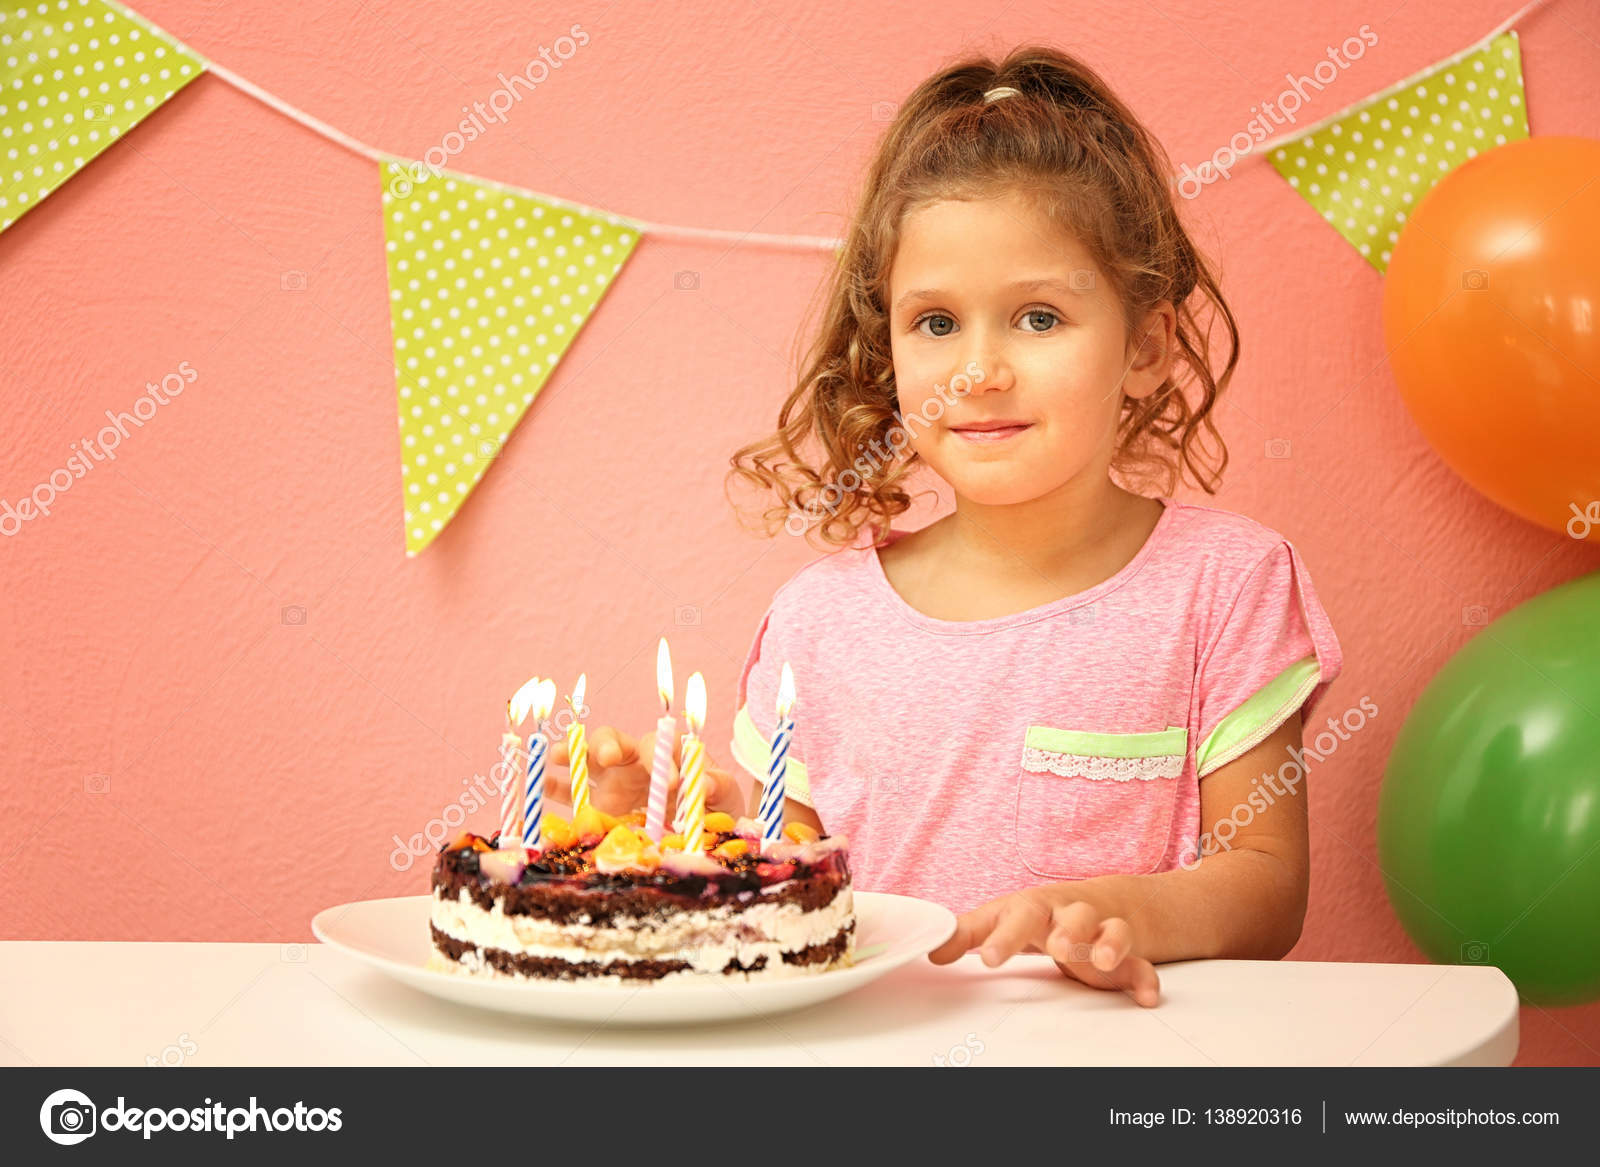 Tremendous Funny Little Girl Birthday Cake Stock Photo C Belchonock 138920316 Funny Birthday Cards Online Alyptdamsfinfo